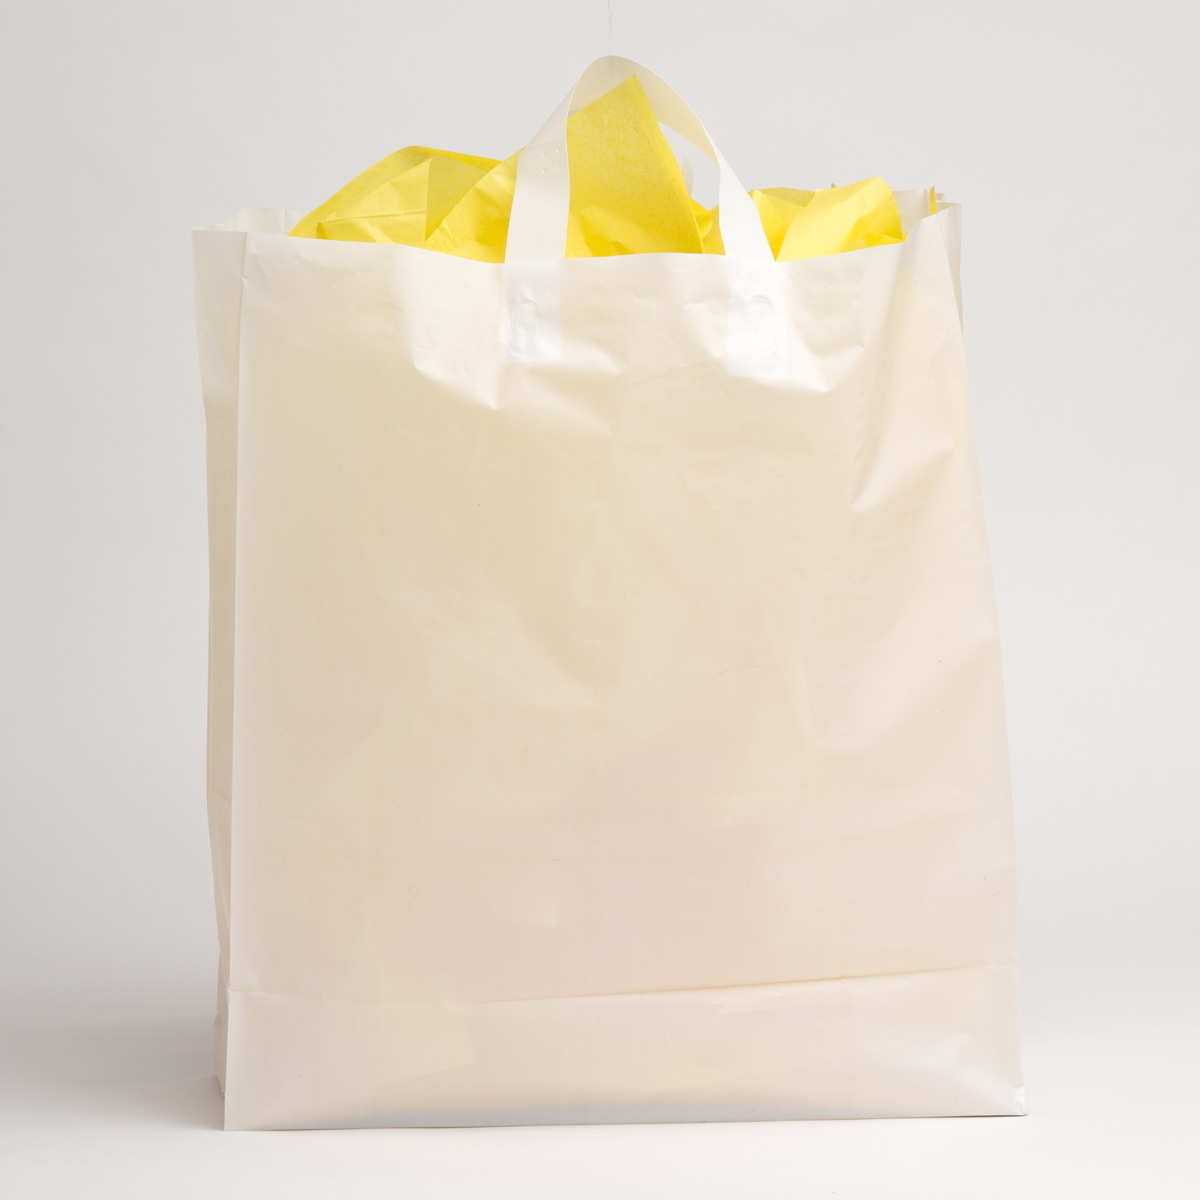 White Plastic Shopping Bags - Extra Large | A&B Store Fixtures